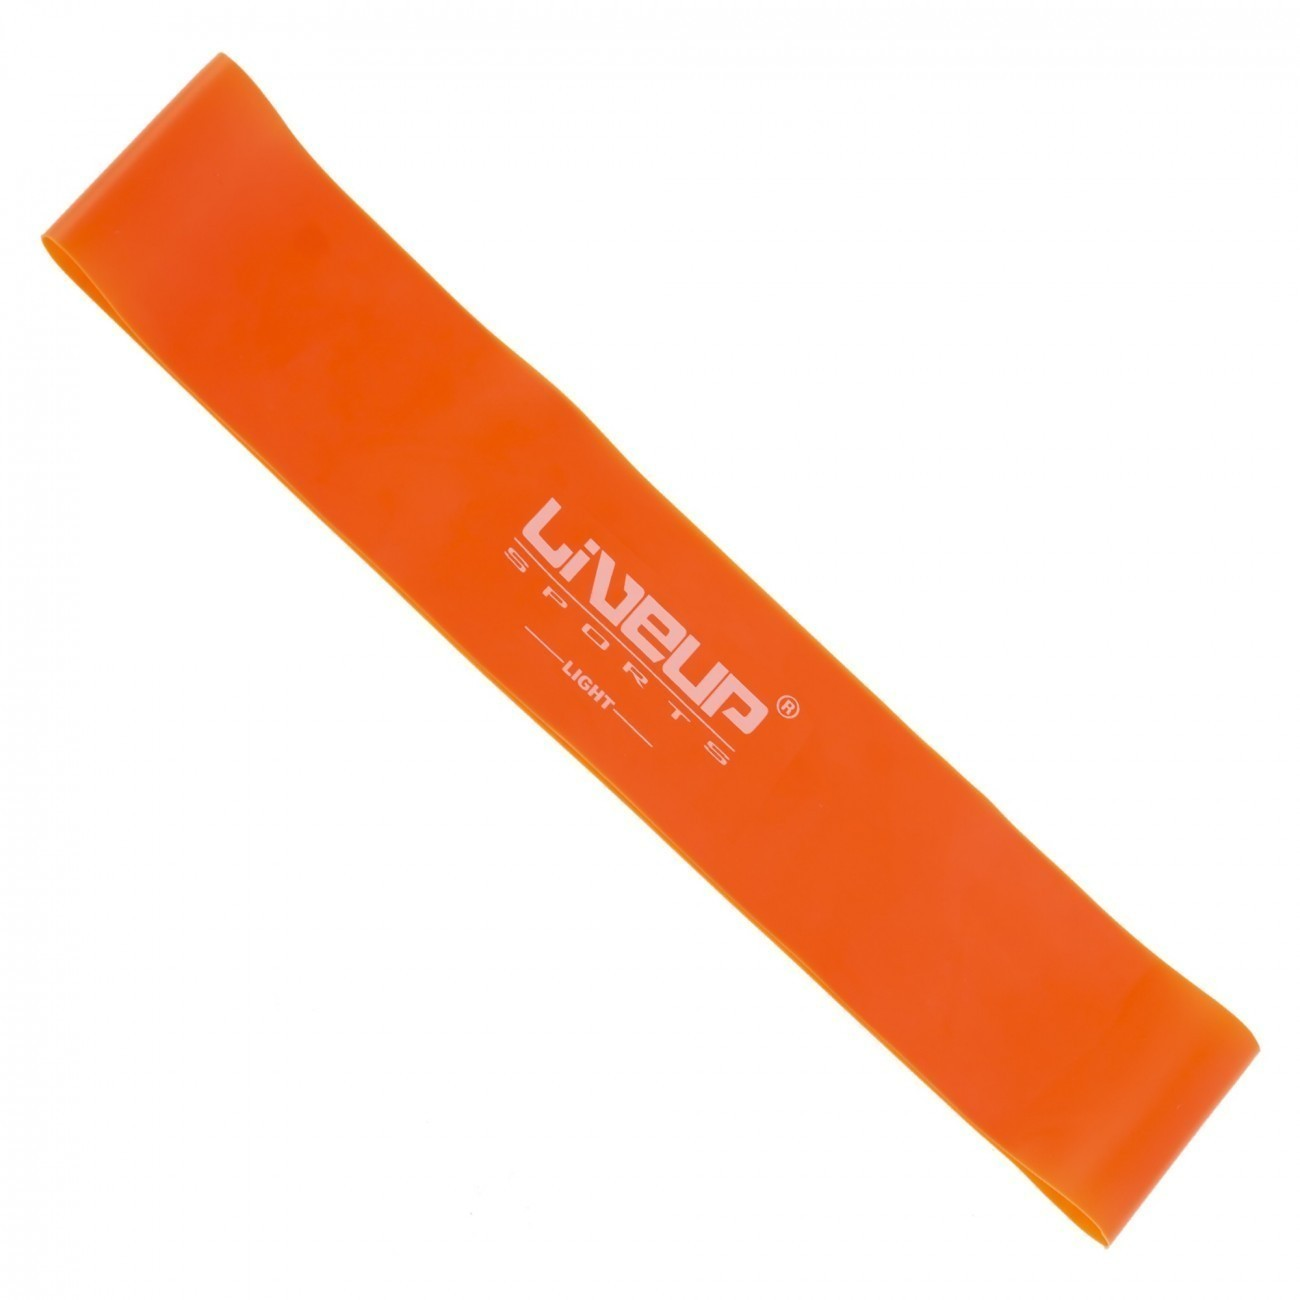 MINI BANDS 1 - LEVE - 25*5*0,04 CM - LIVEUP SPORTS